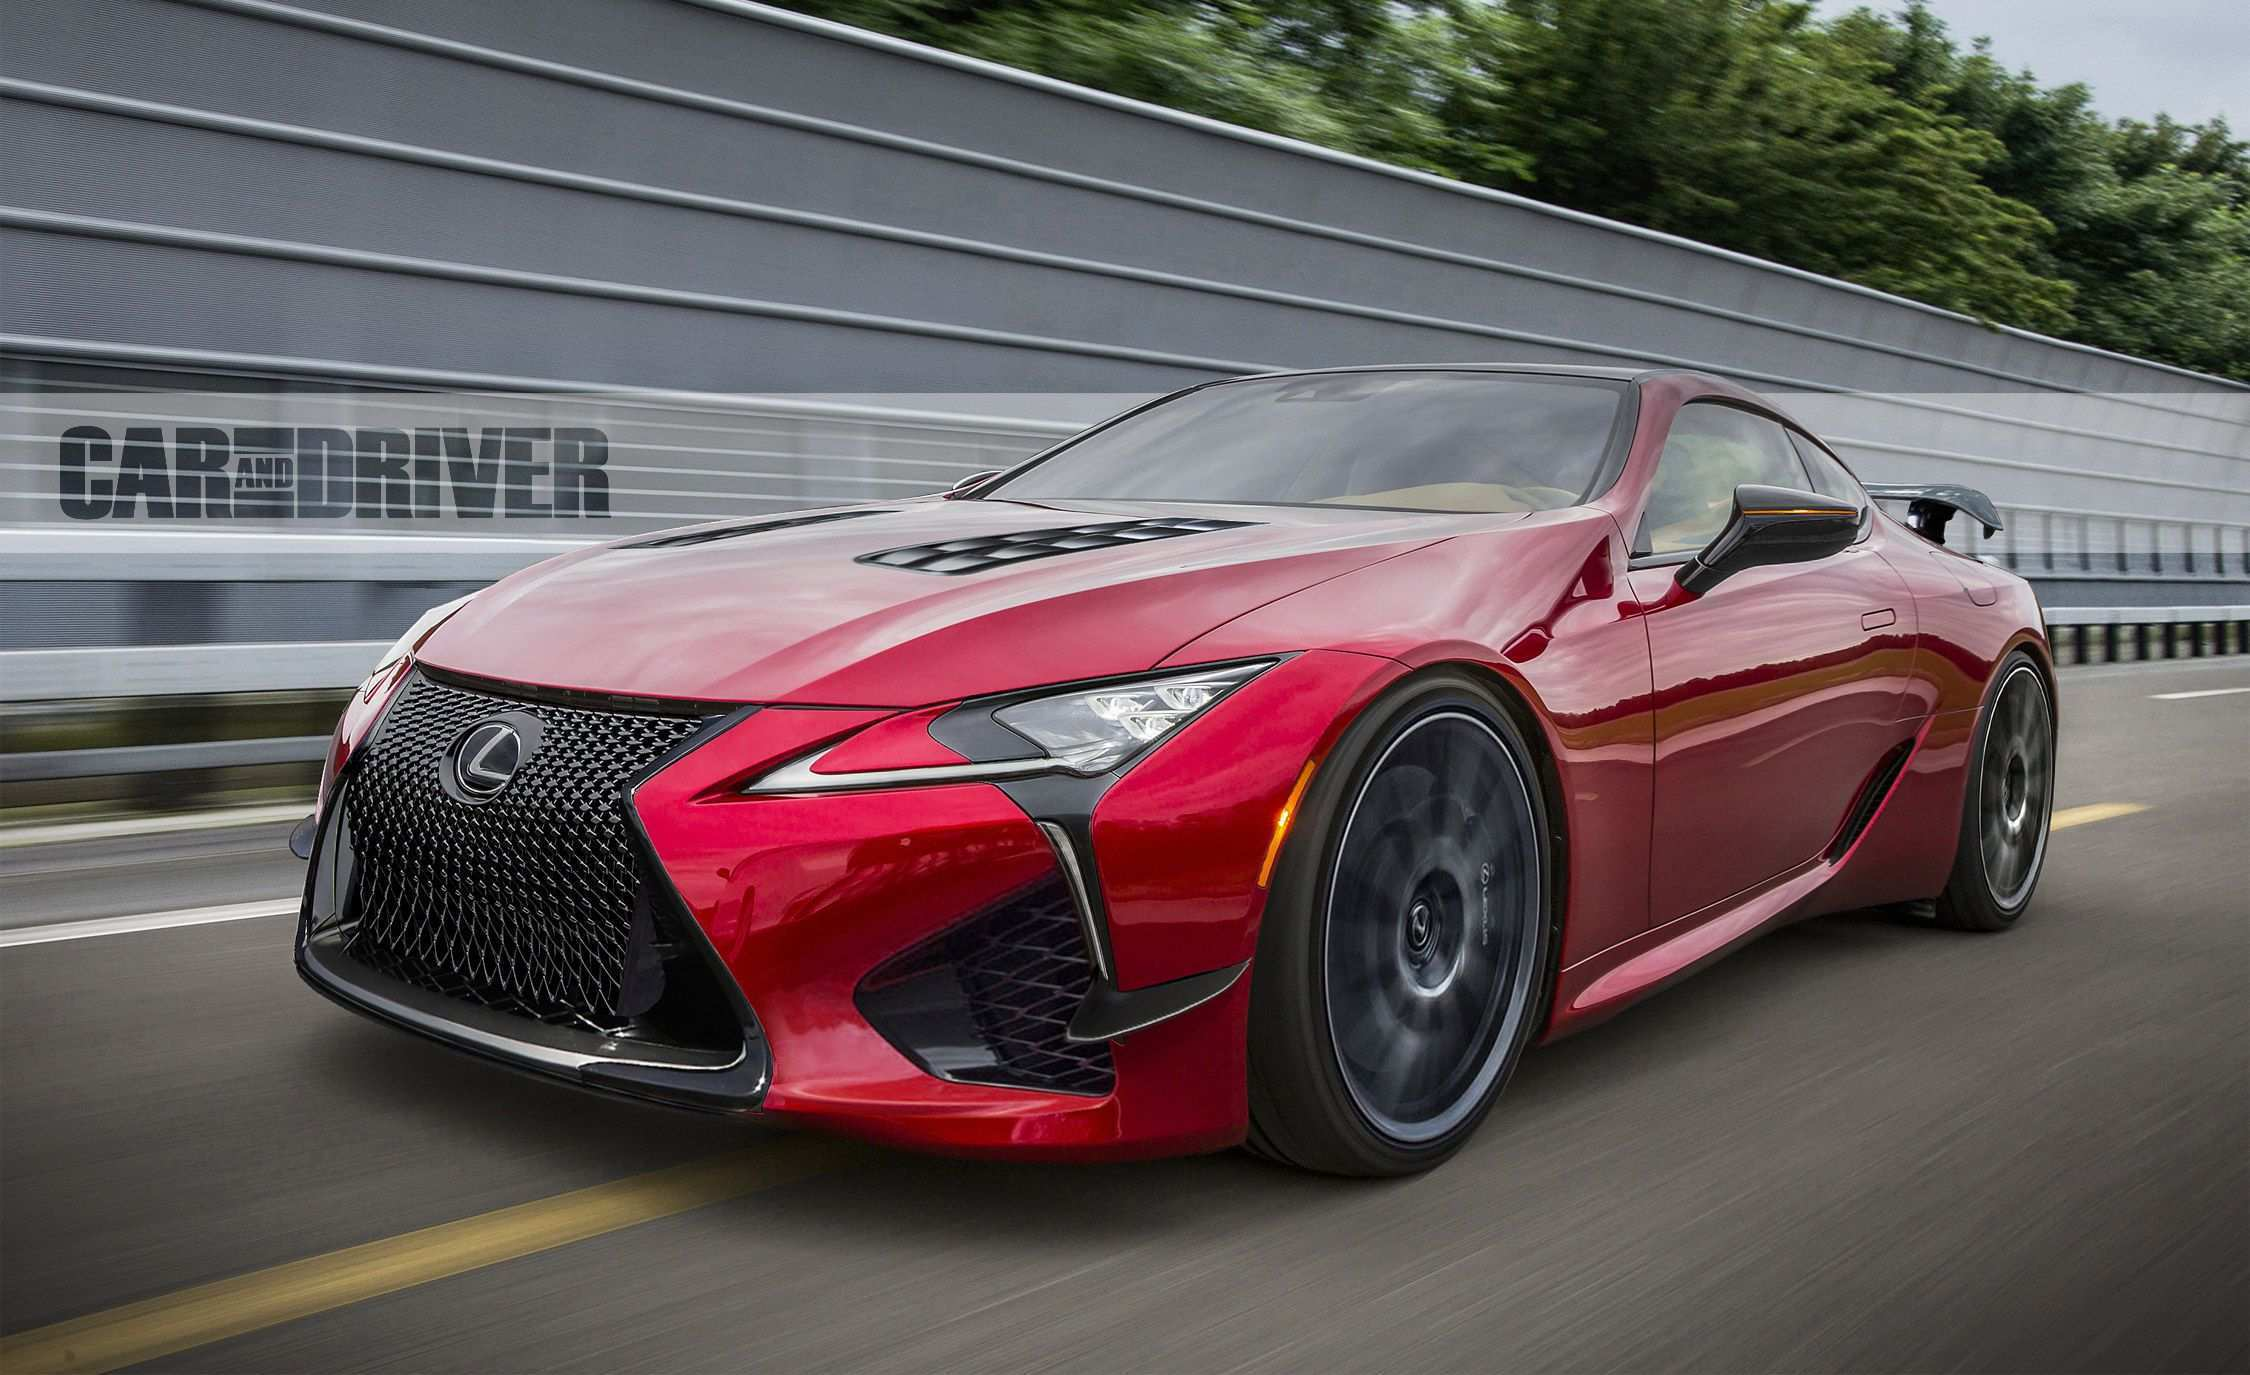 66 The Best Lexus Lc F 2020 Model